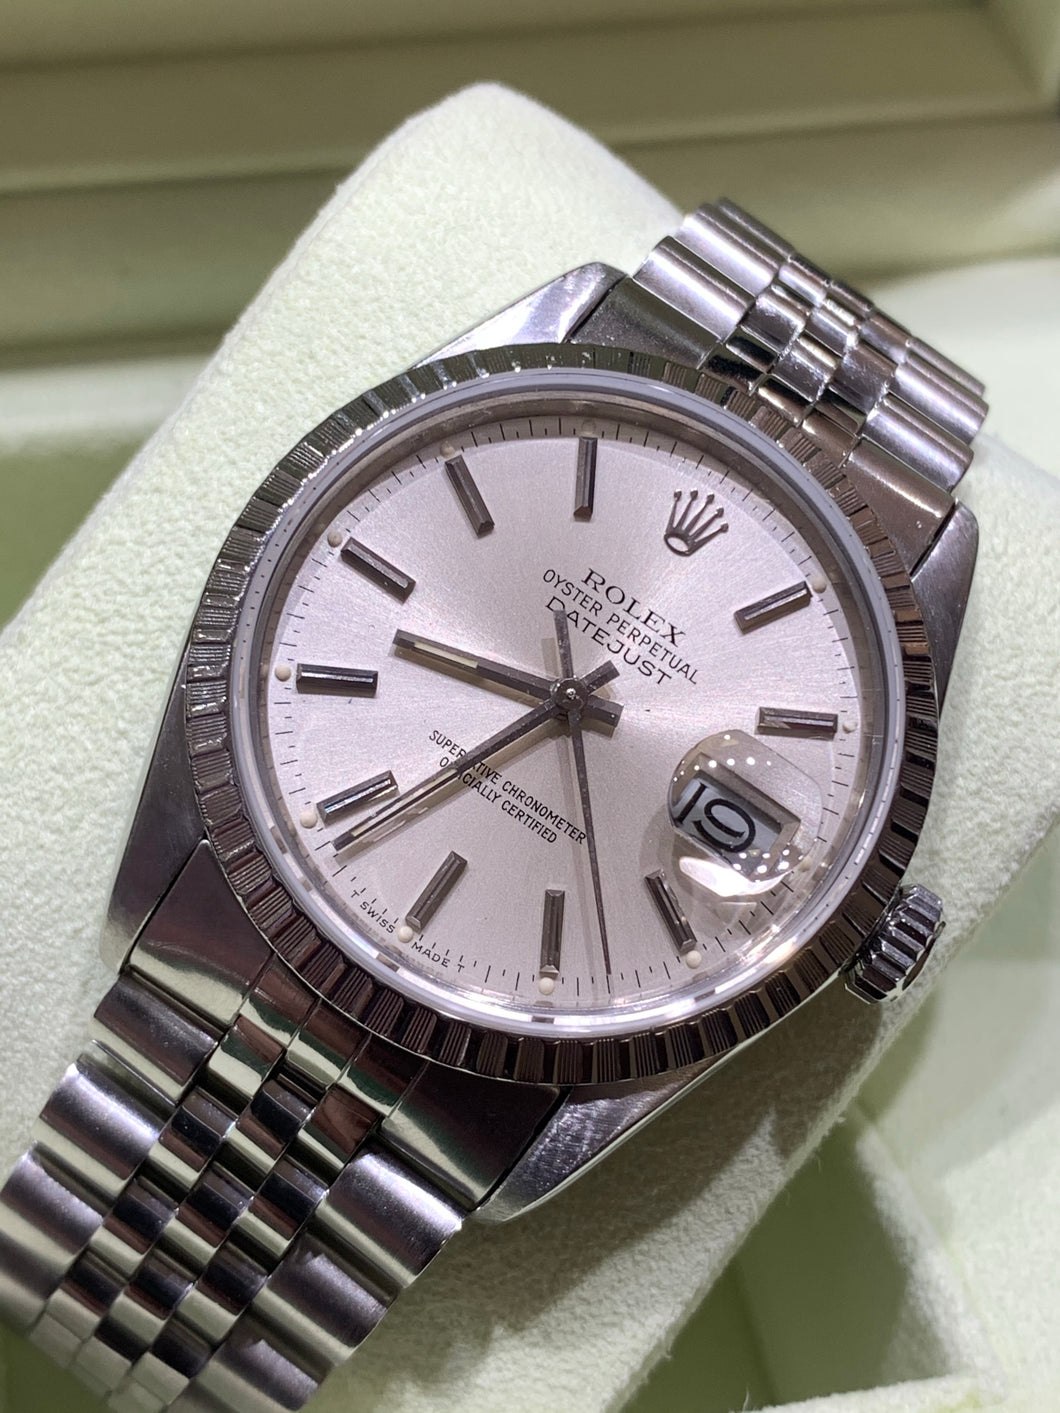 Rolex Datejust Stainless Steel 16030 Jubilee band